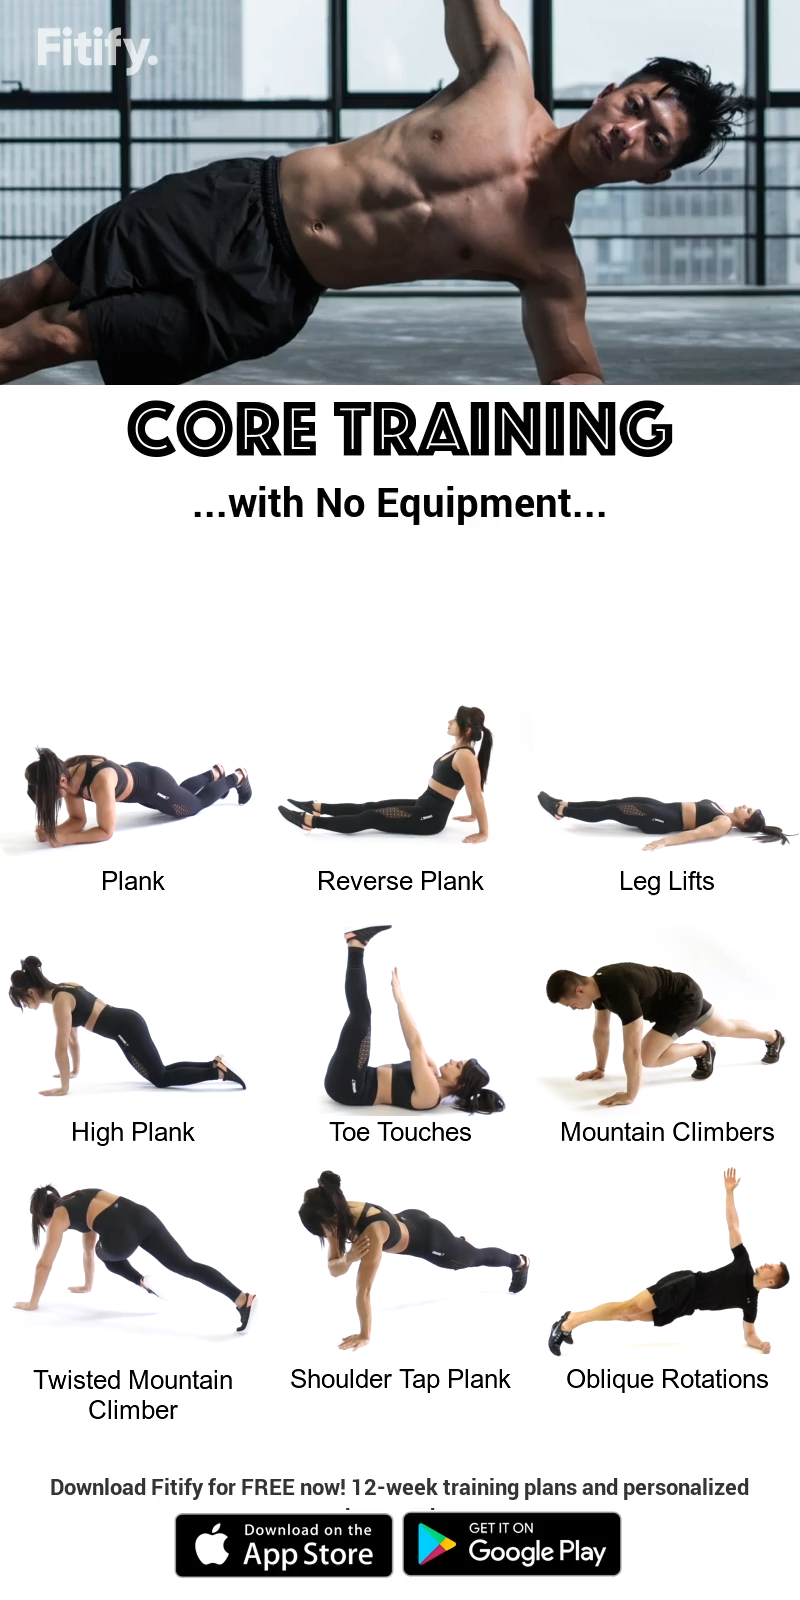 Core Training without Equipment